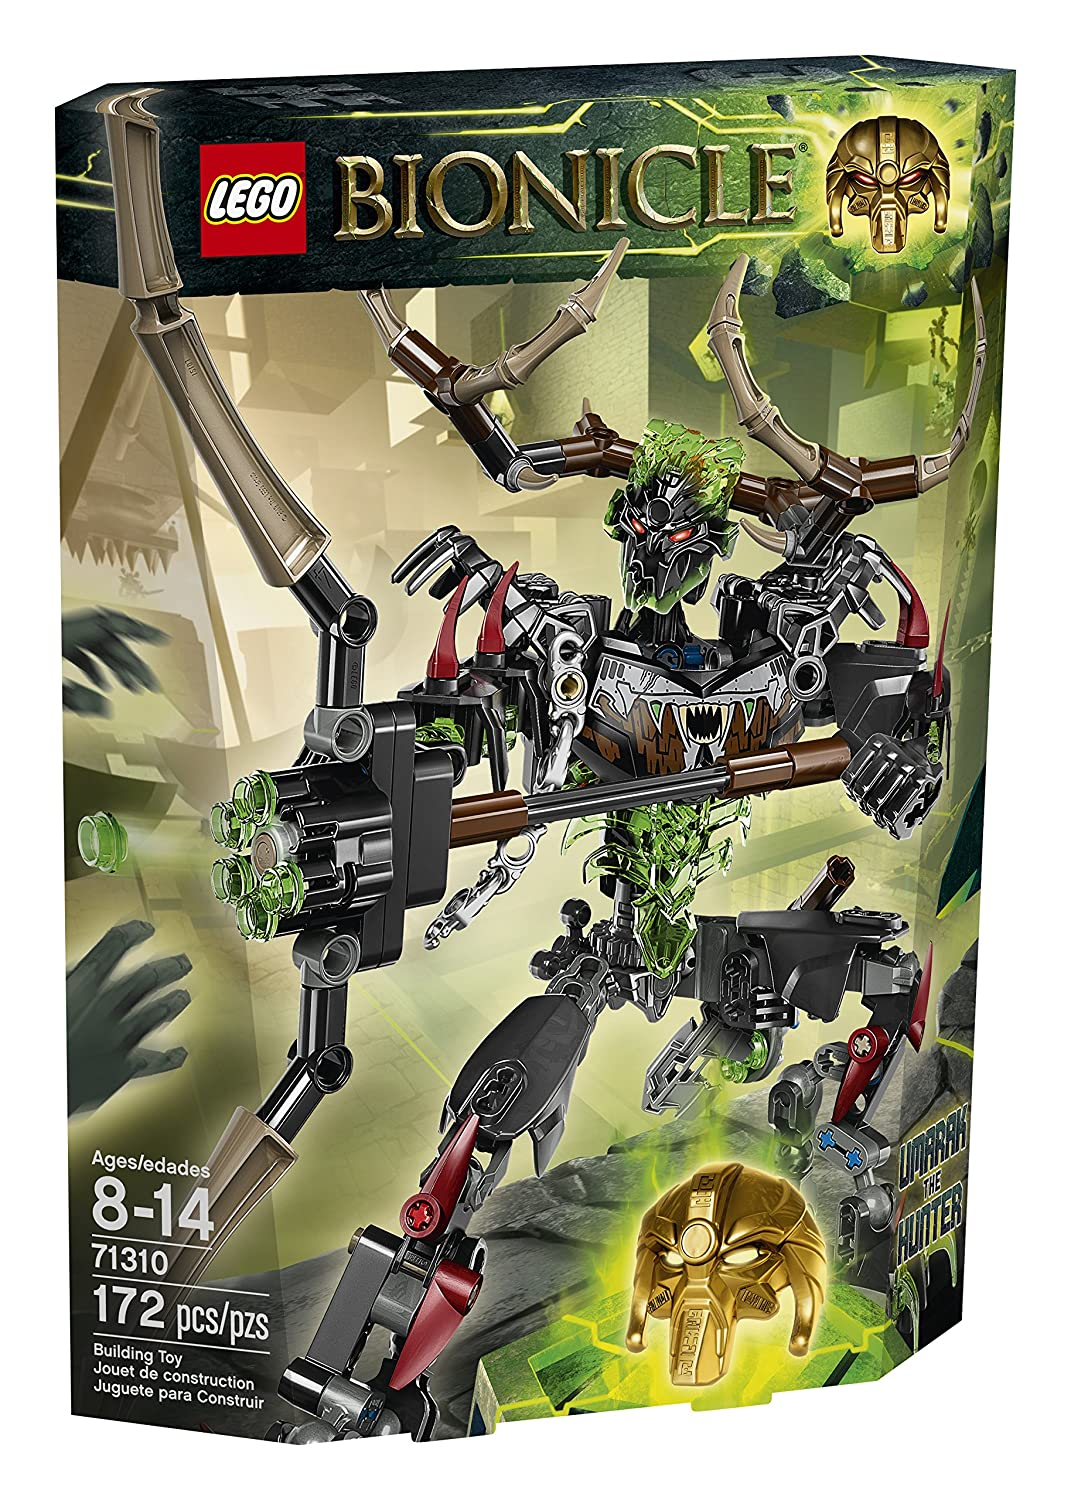 Top 15 Best Lego BIONICLE Sets Reviews in 2019 13